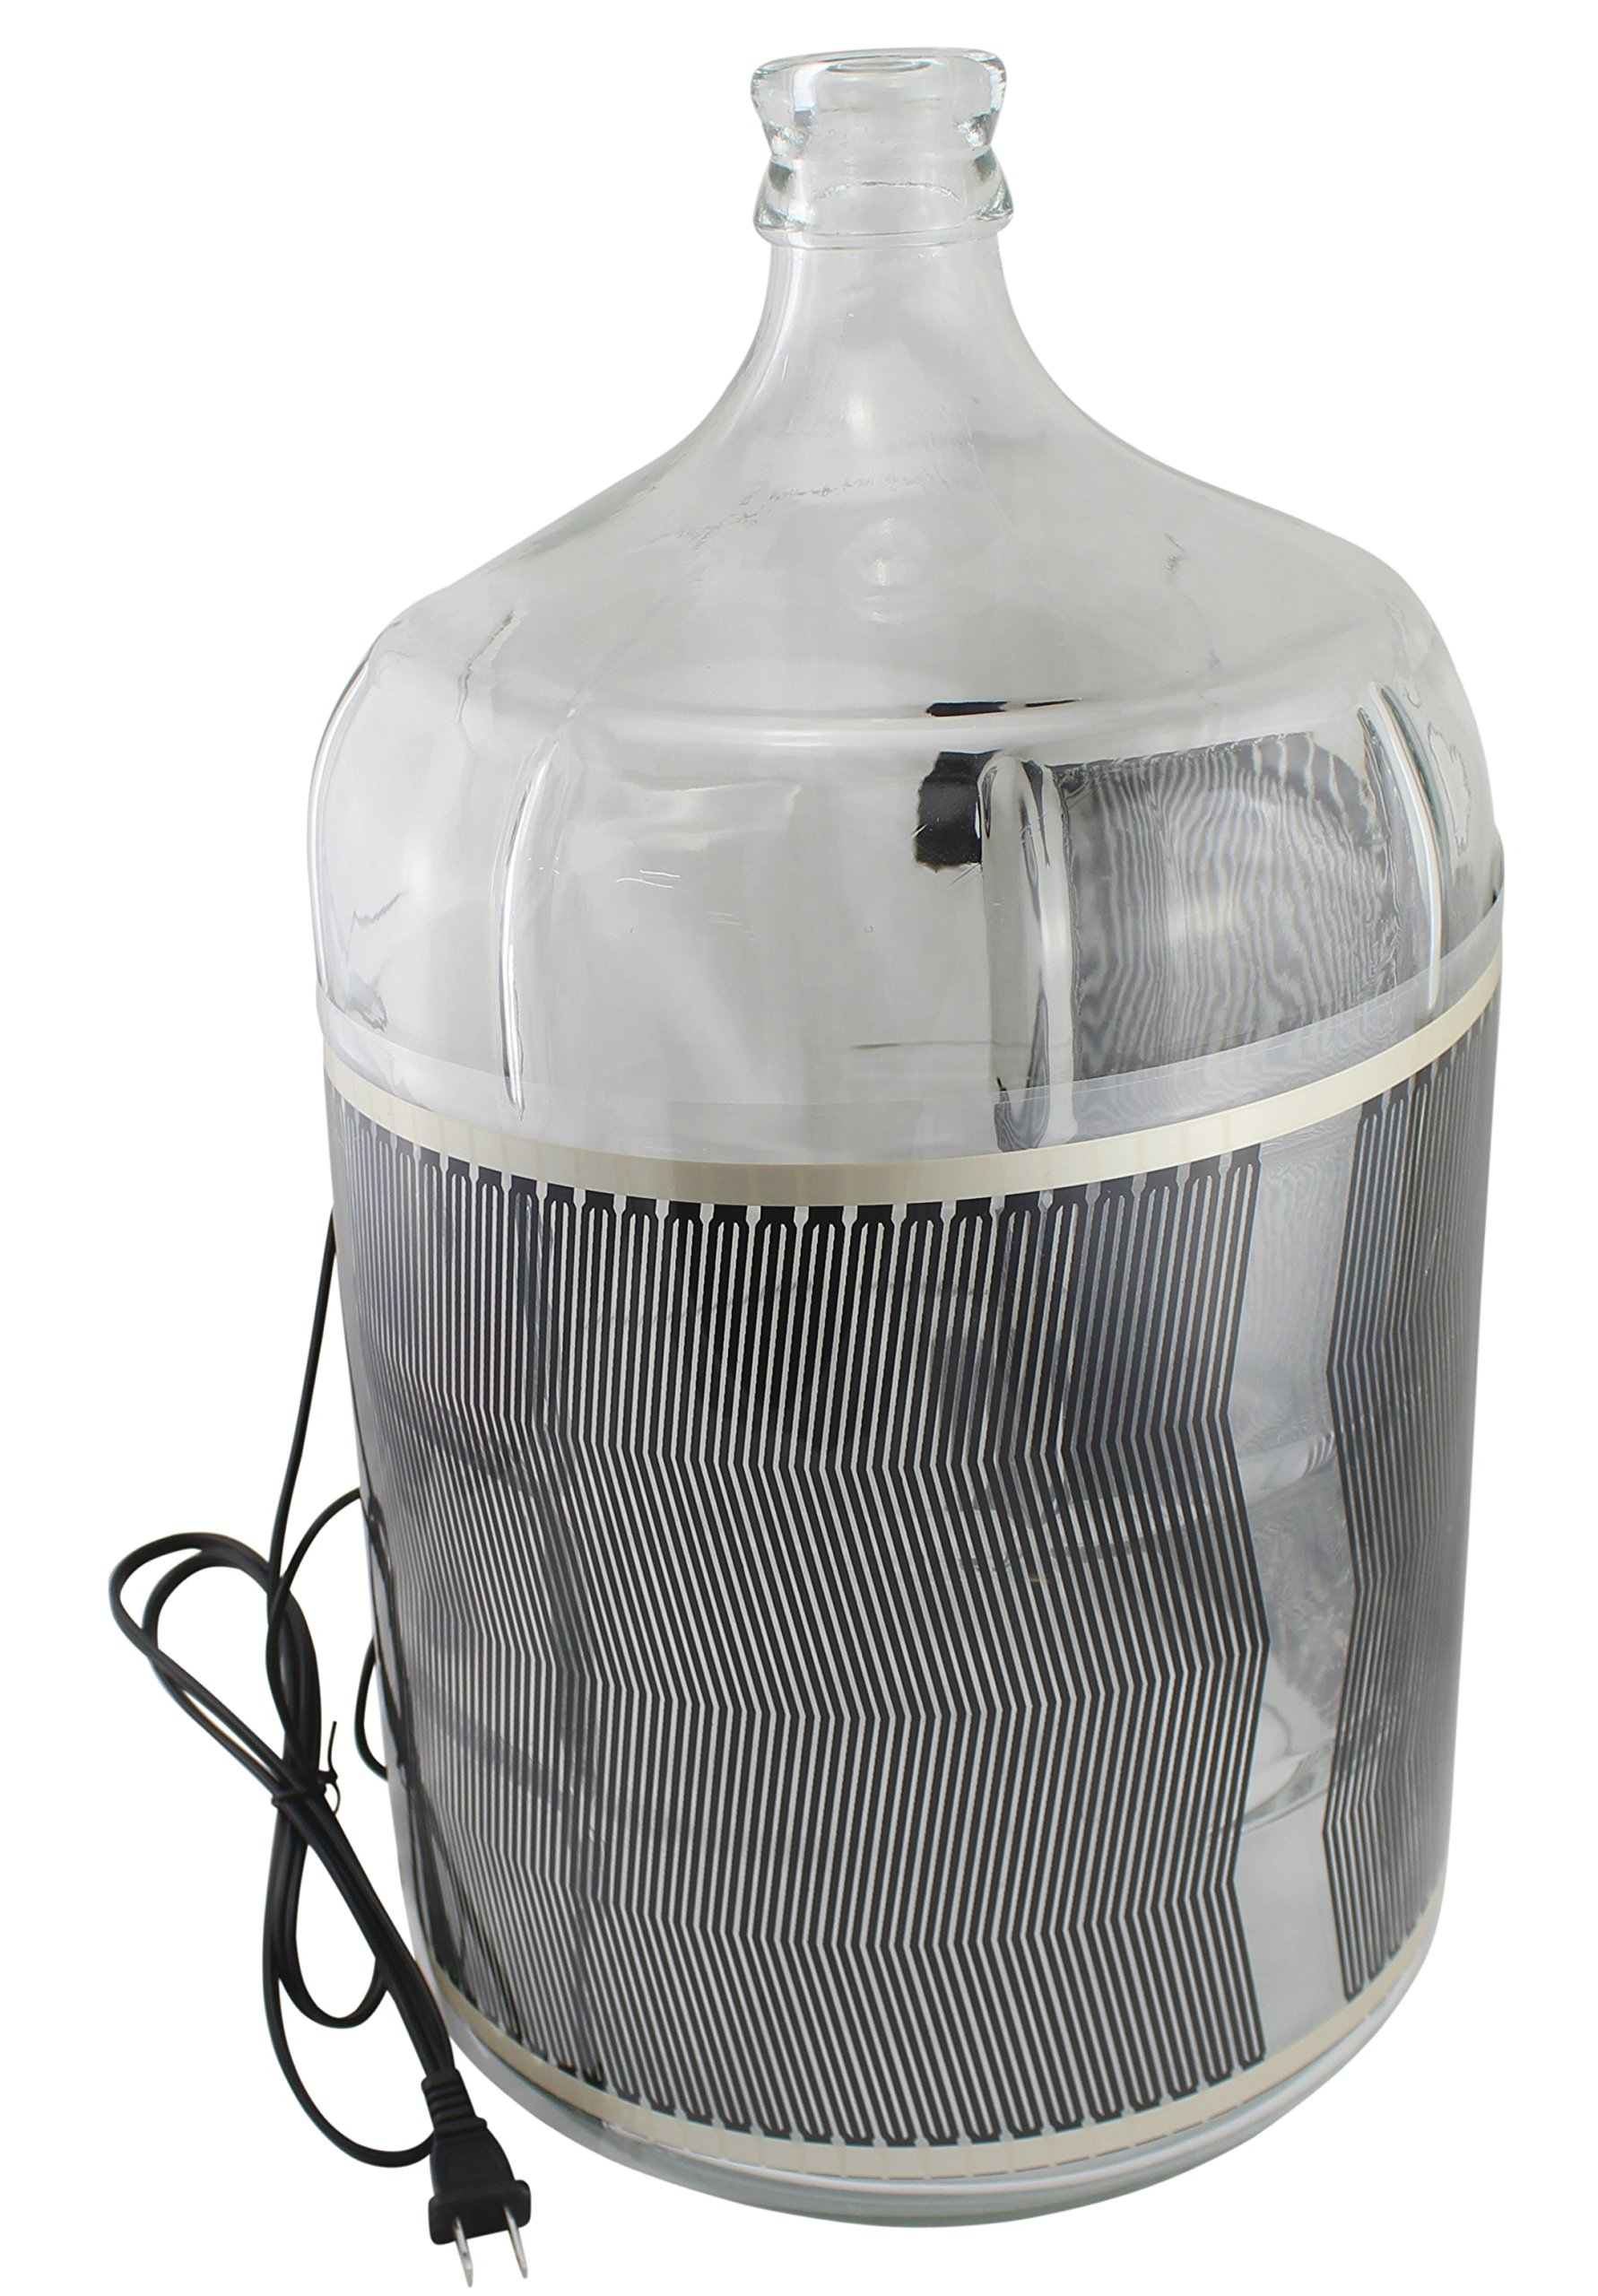 Fermentation Heater by The Weekend Brewer by The Weekend Brewer (Image #2)